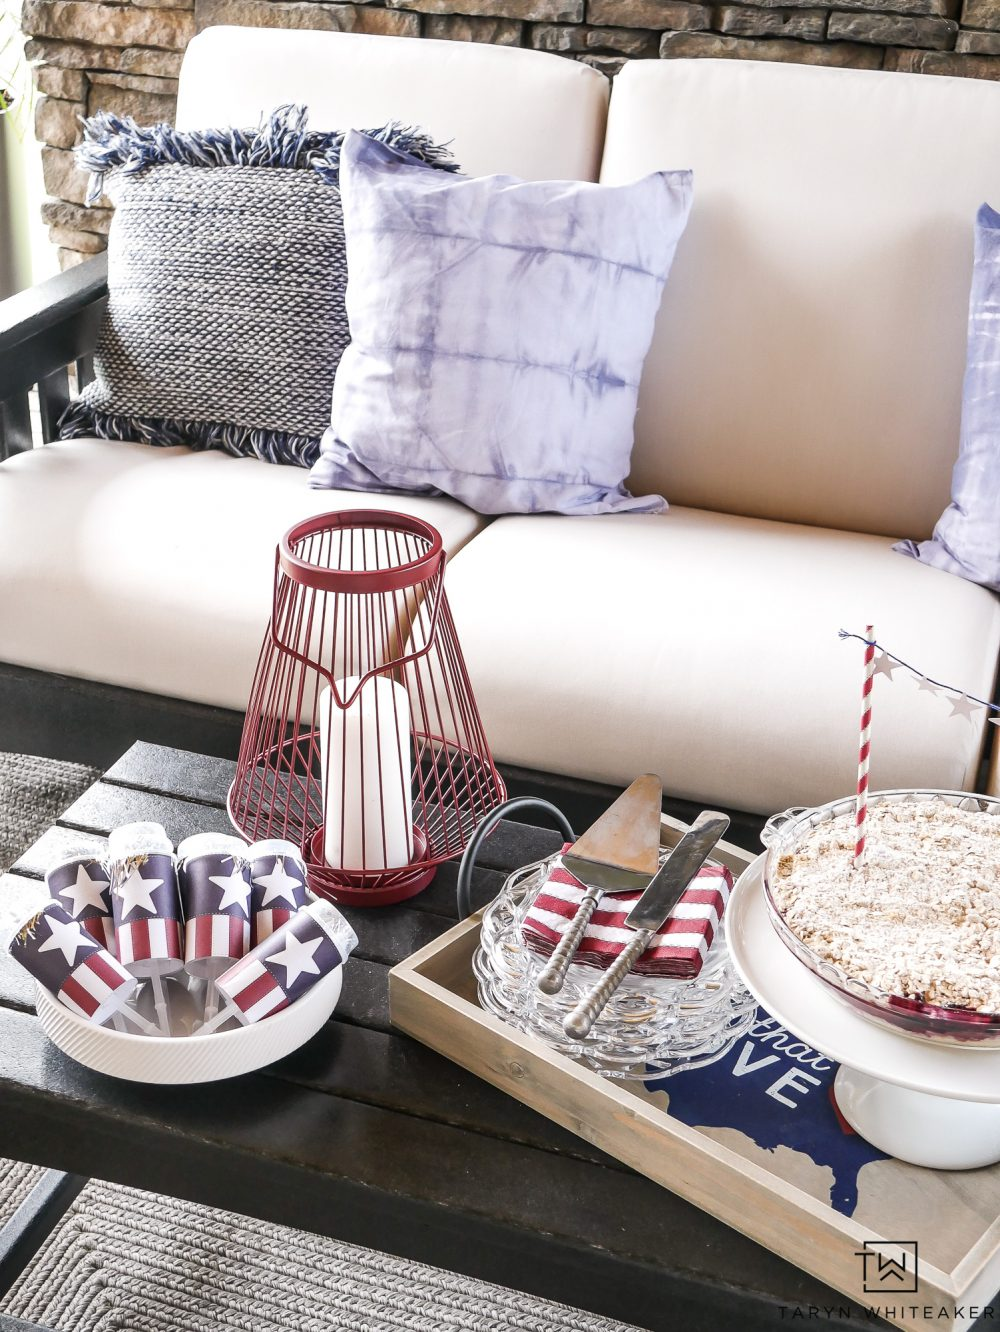 Love the red, white and blue decor to add to your coffee table. I love this wire lantern and cute tray for dessert. Those party poppers are so fun for kids.